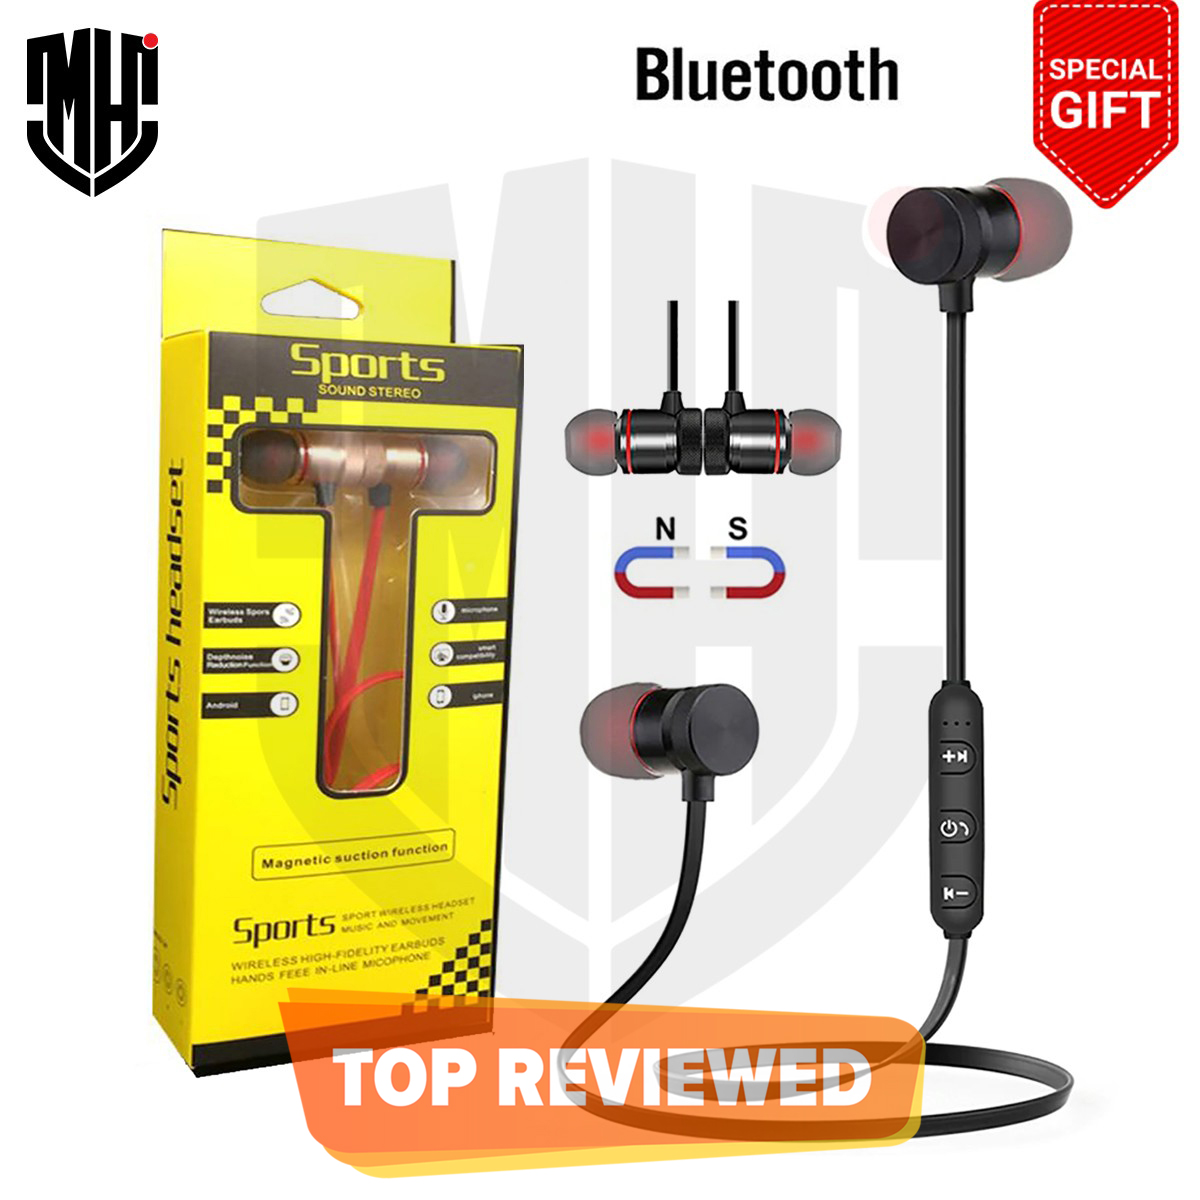 Original Wireless Magnetic Suction Function Wireless Earbuds Bluetooth Handsfree  Portable Magnetic Wireless Hands Free Earphone Stereo Bluetooth 4.2 Headset with Microphone Sports Stereo Headset Gaming Headset Sport Handfree Wireless Bluetooth